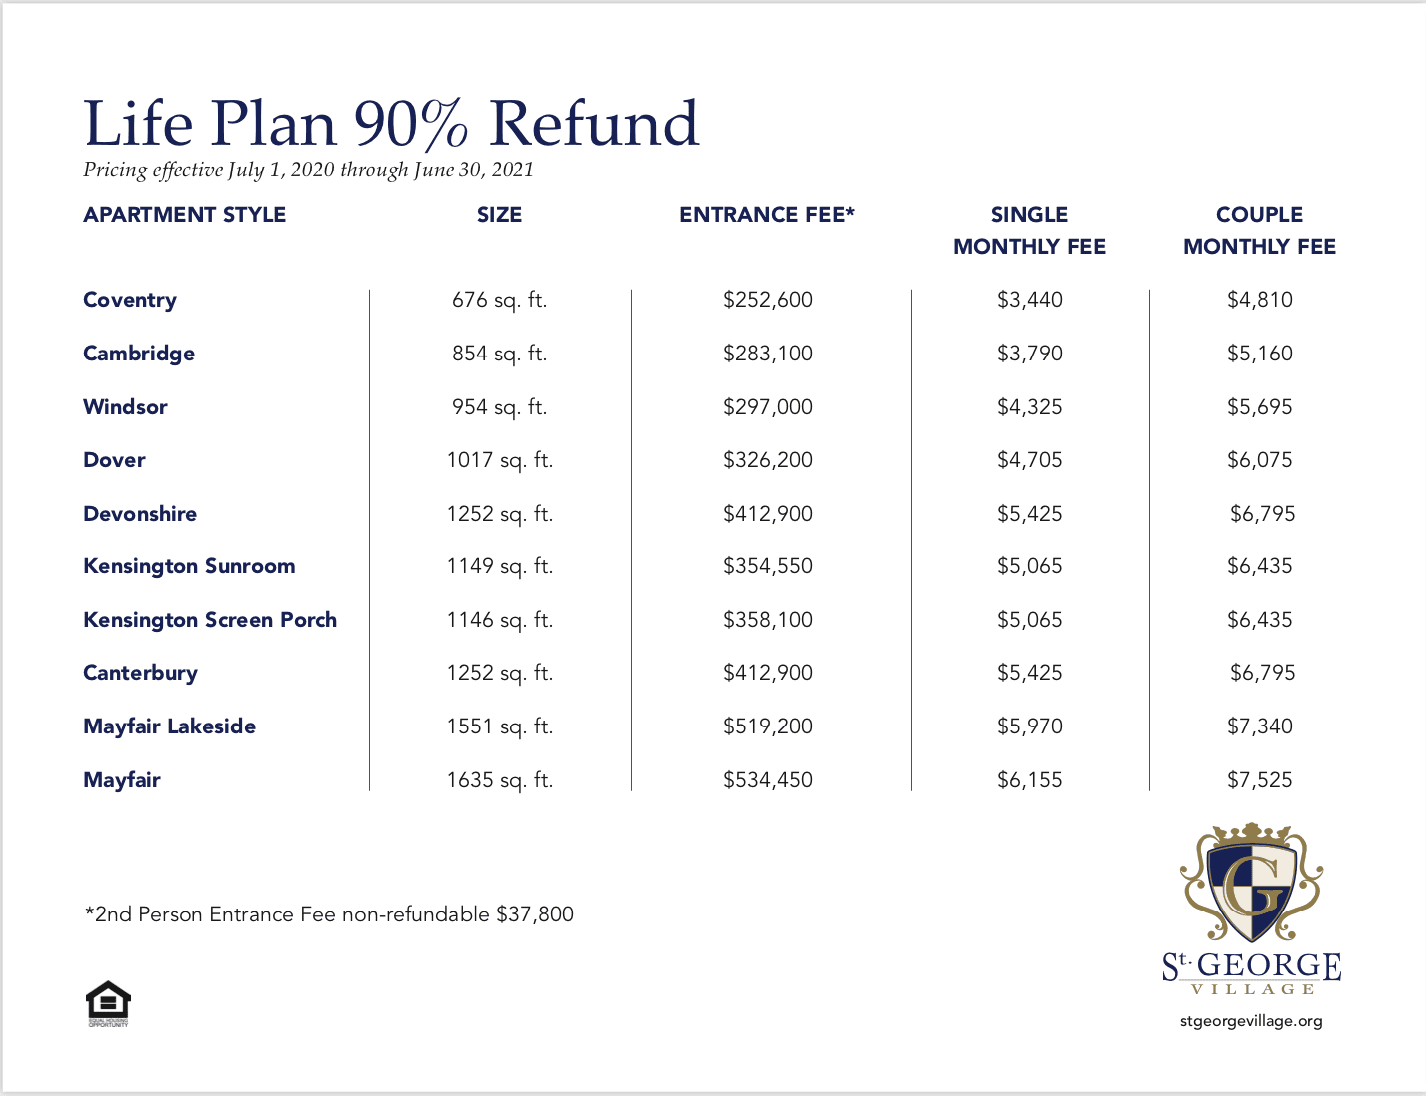 life plan 90% refund